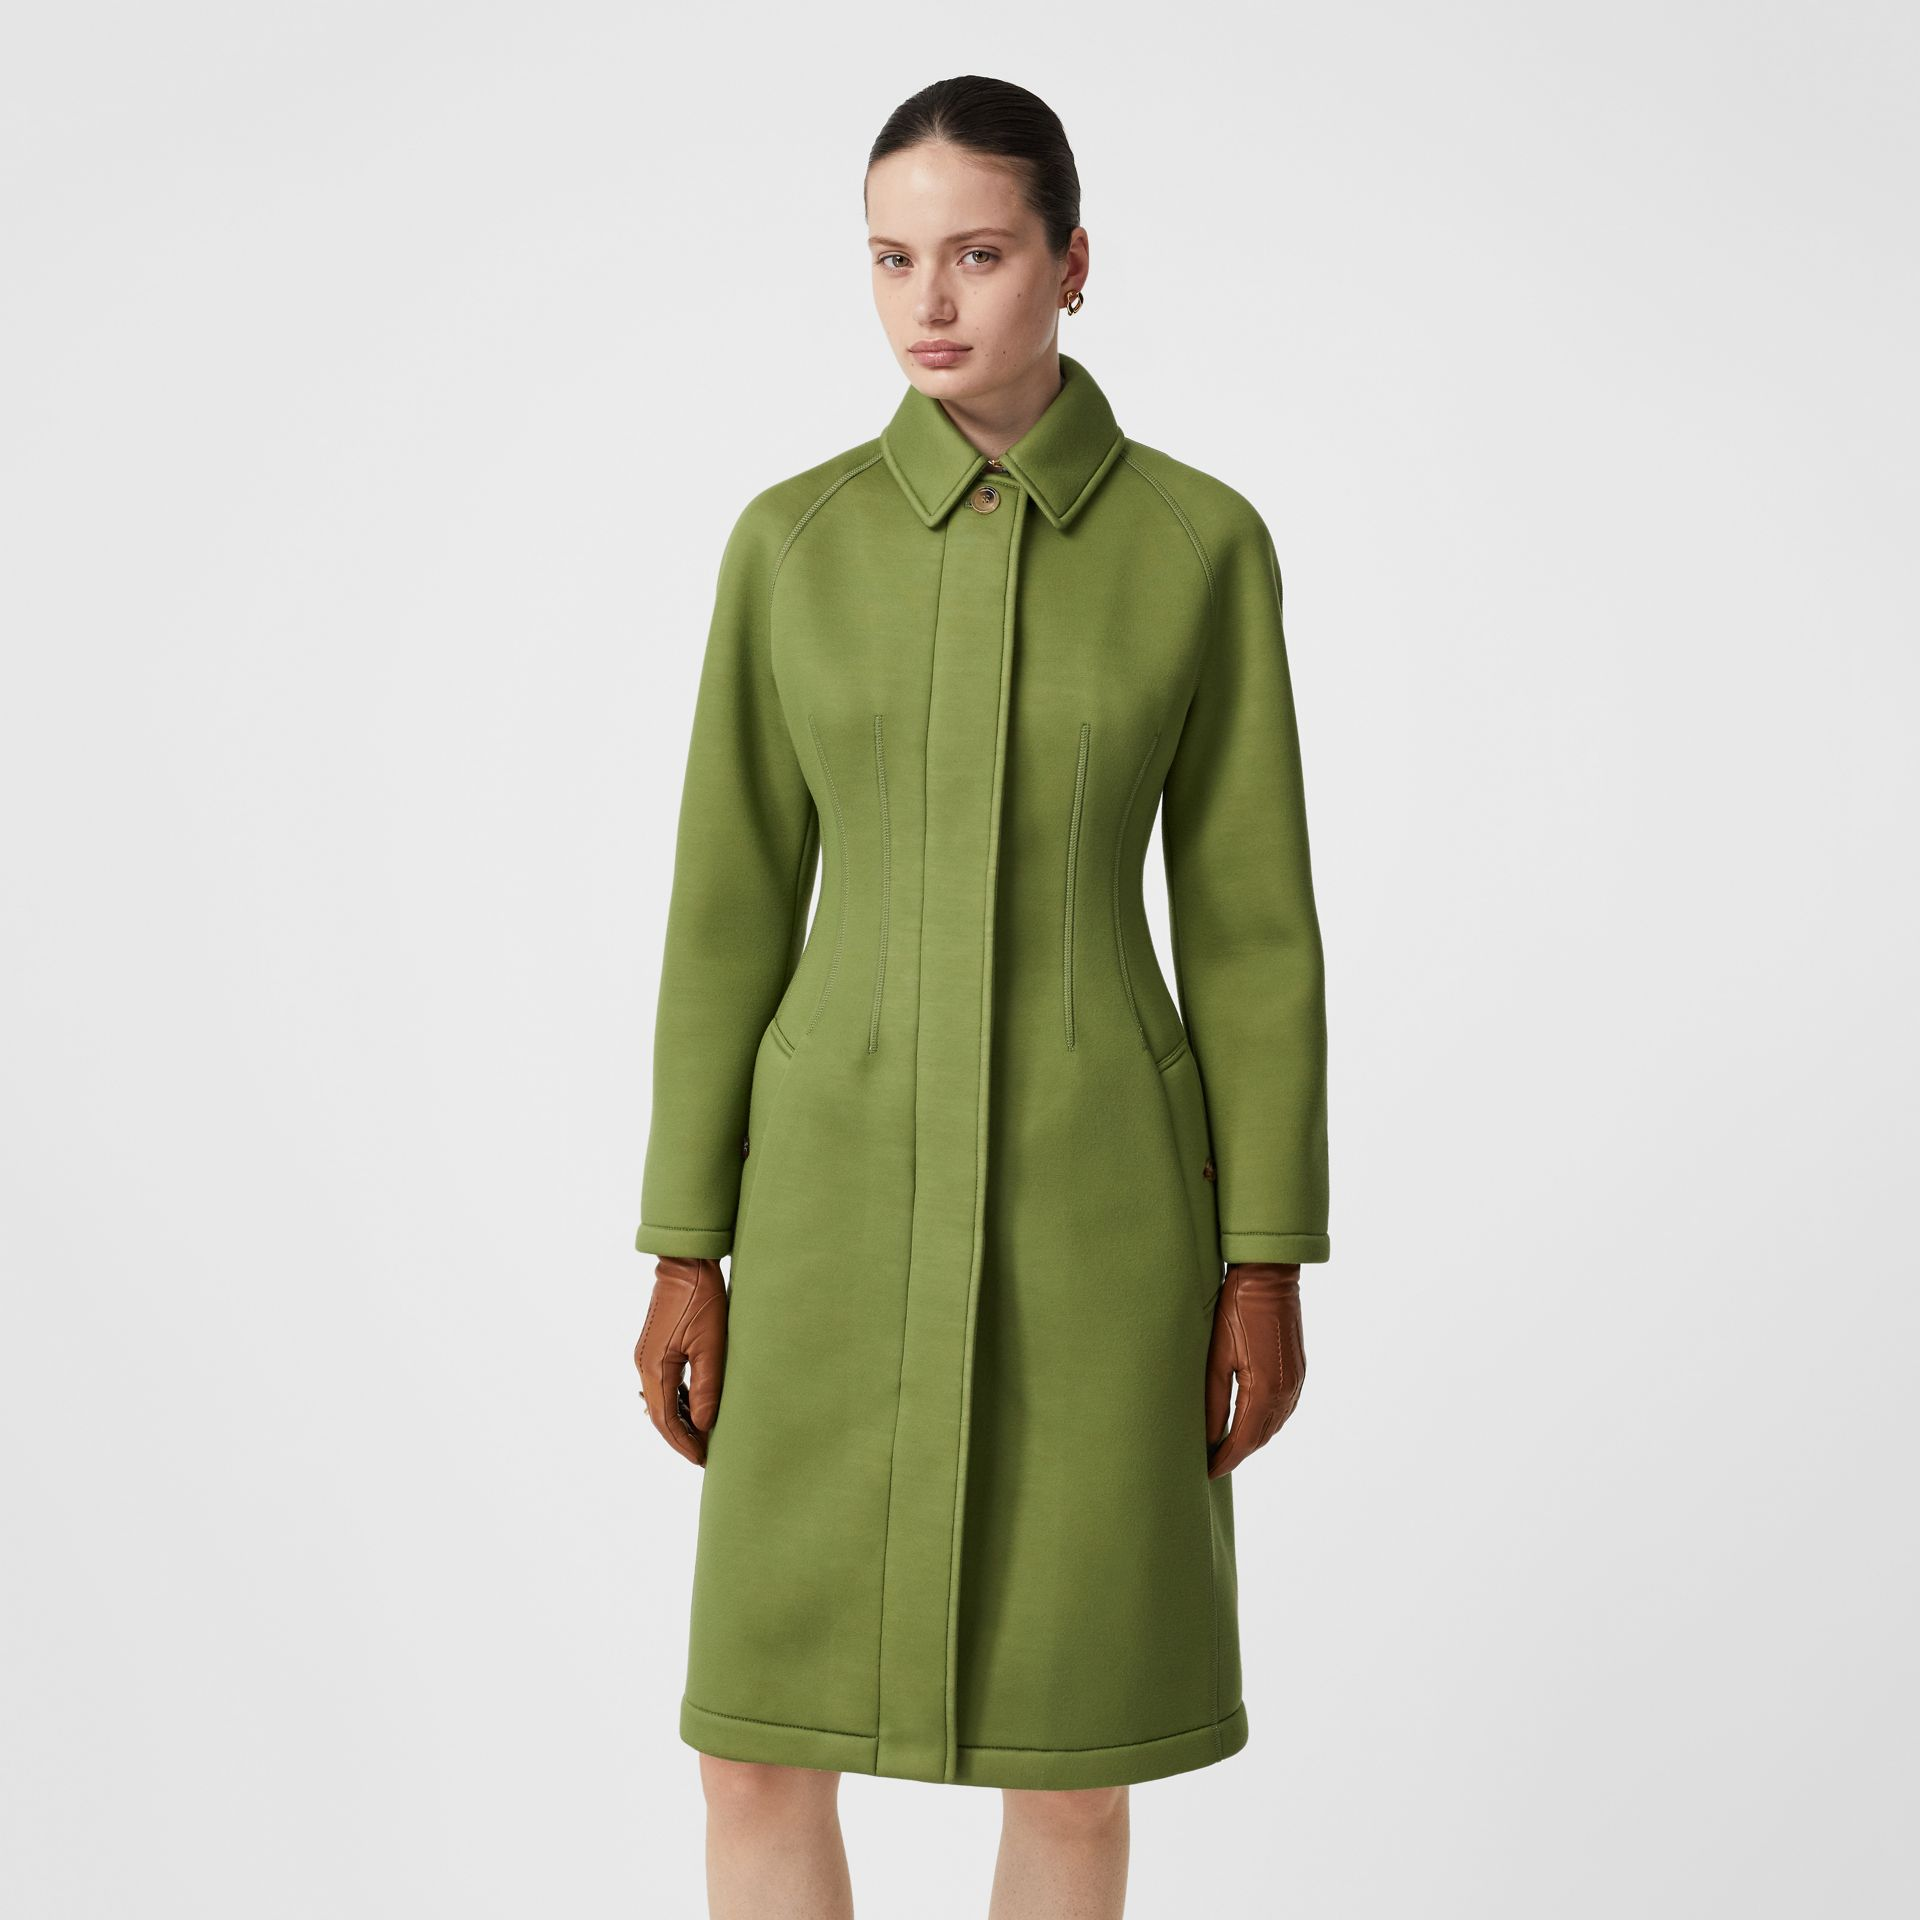 Bonded Neoprene Tailored Car Coat in Cedar Green - Women | Burberry Hong Kong S.A.R - gallery image 5